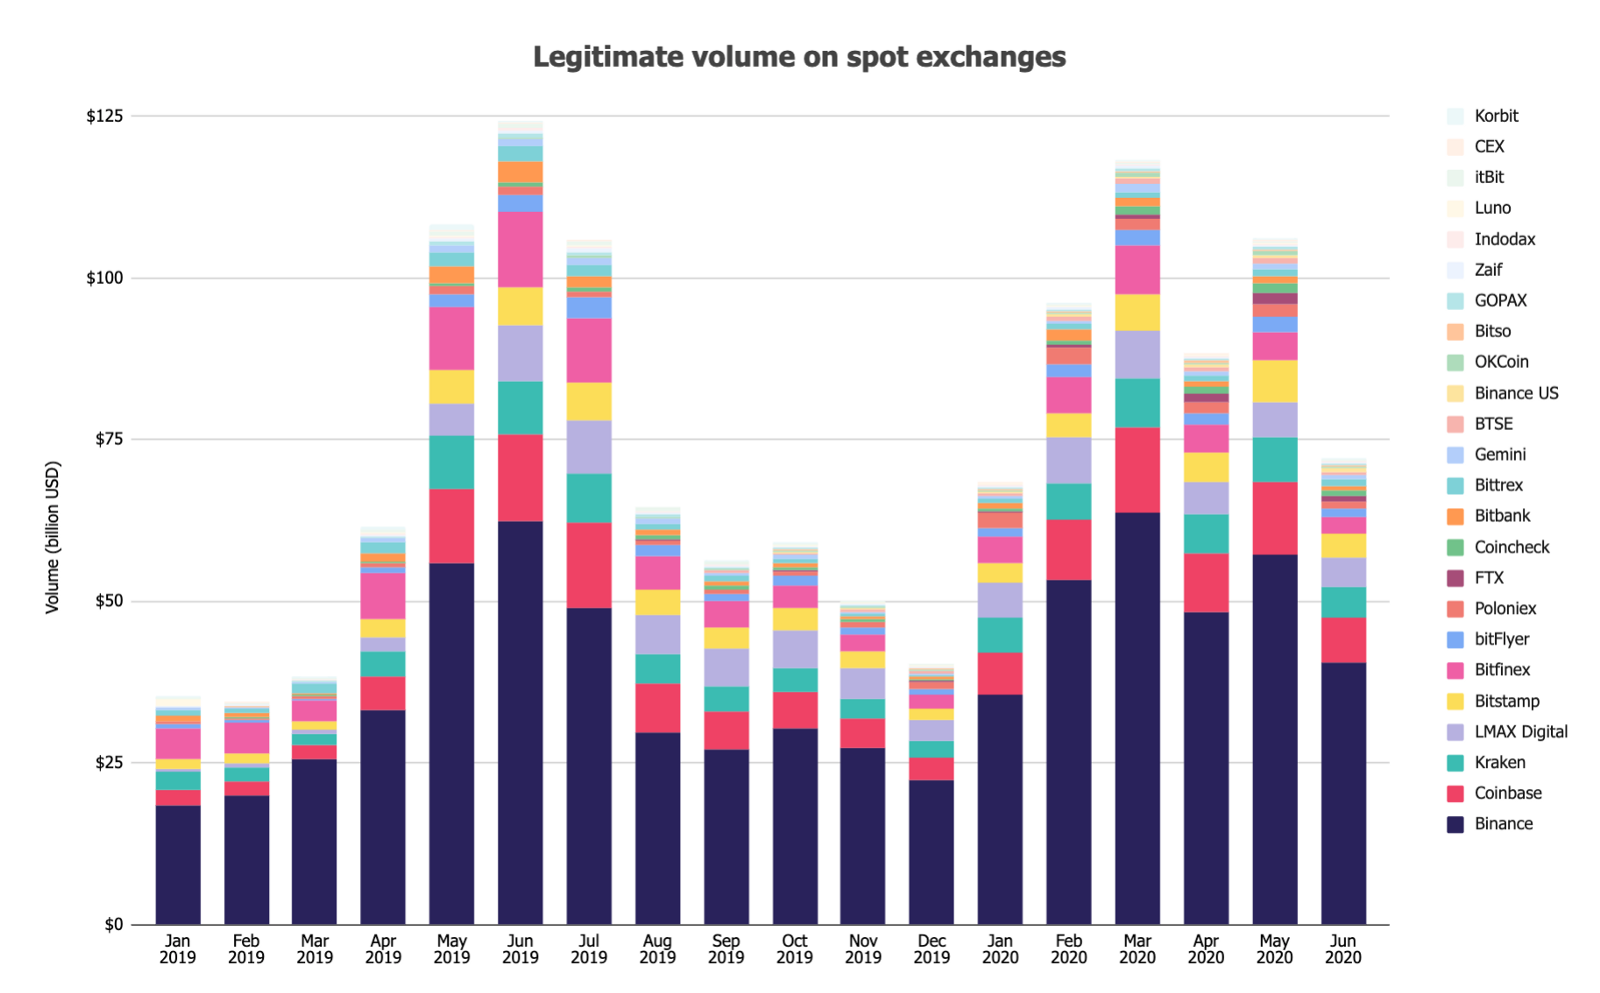 Legitimate volume on spot exchanges